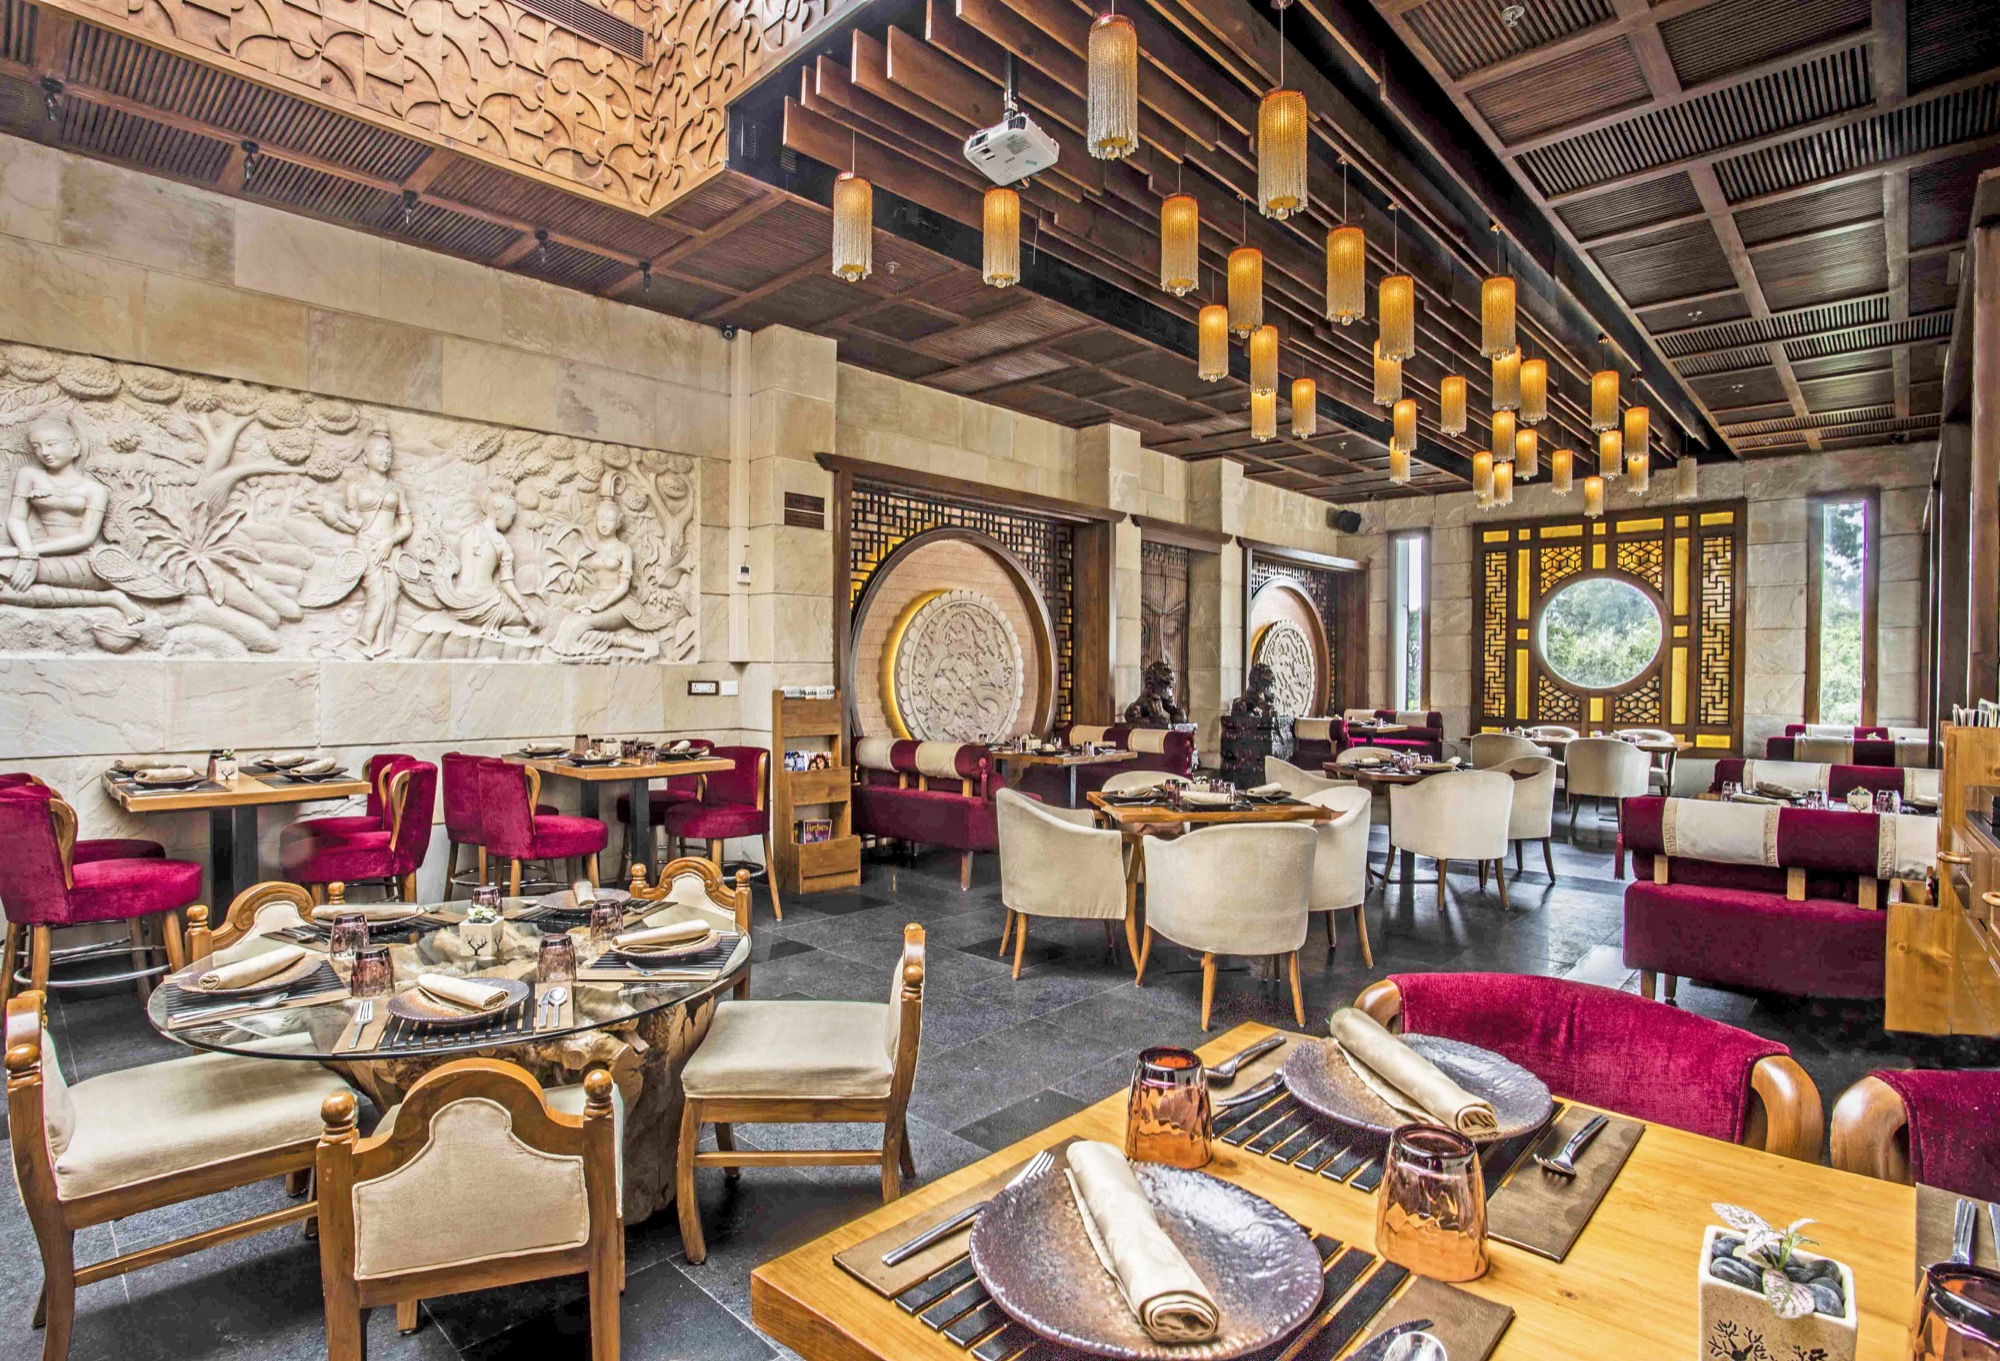 Best of Asia Village Restaurant - Aspire Designs